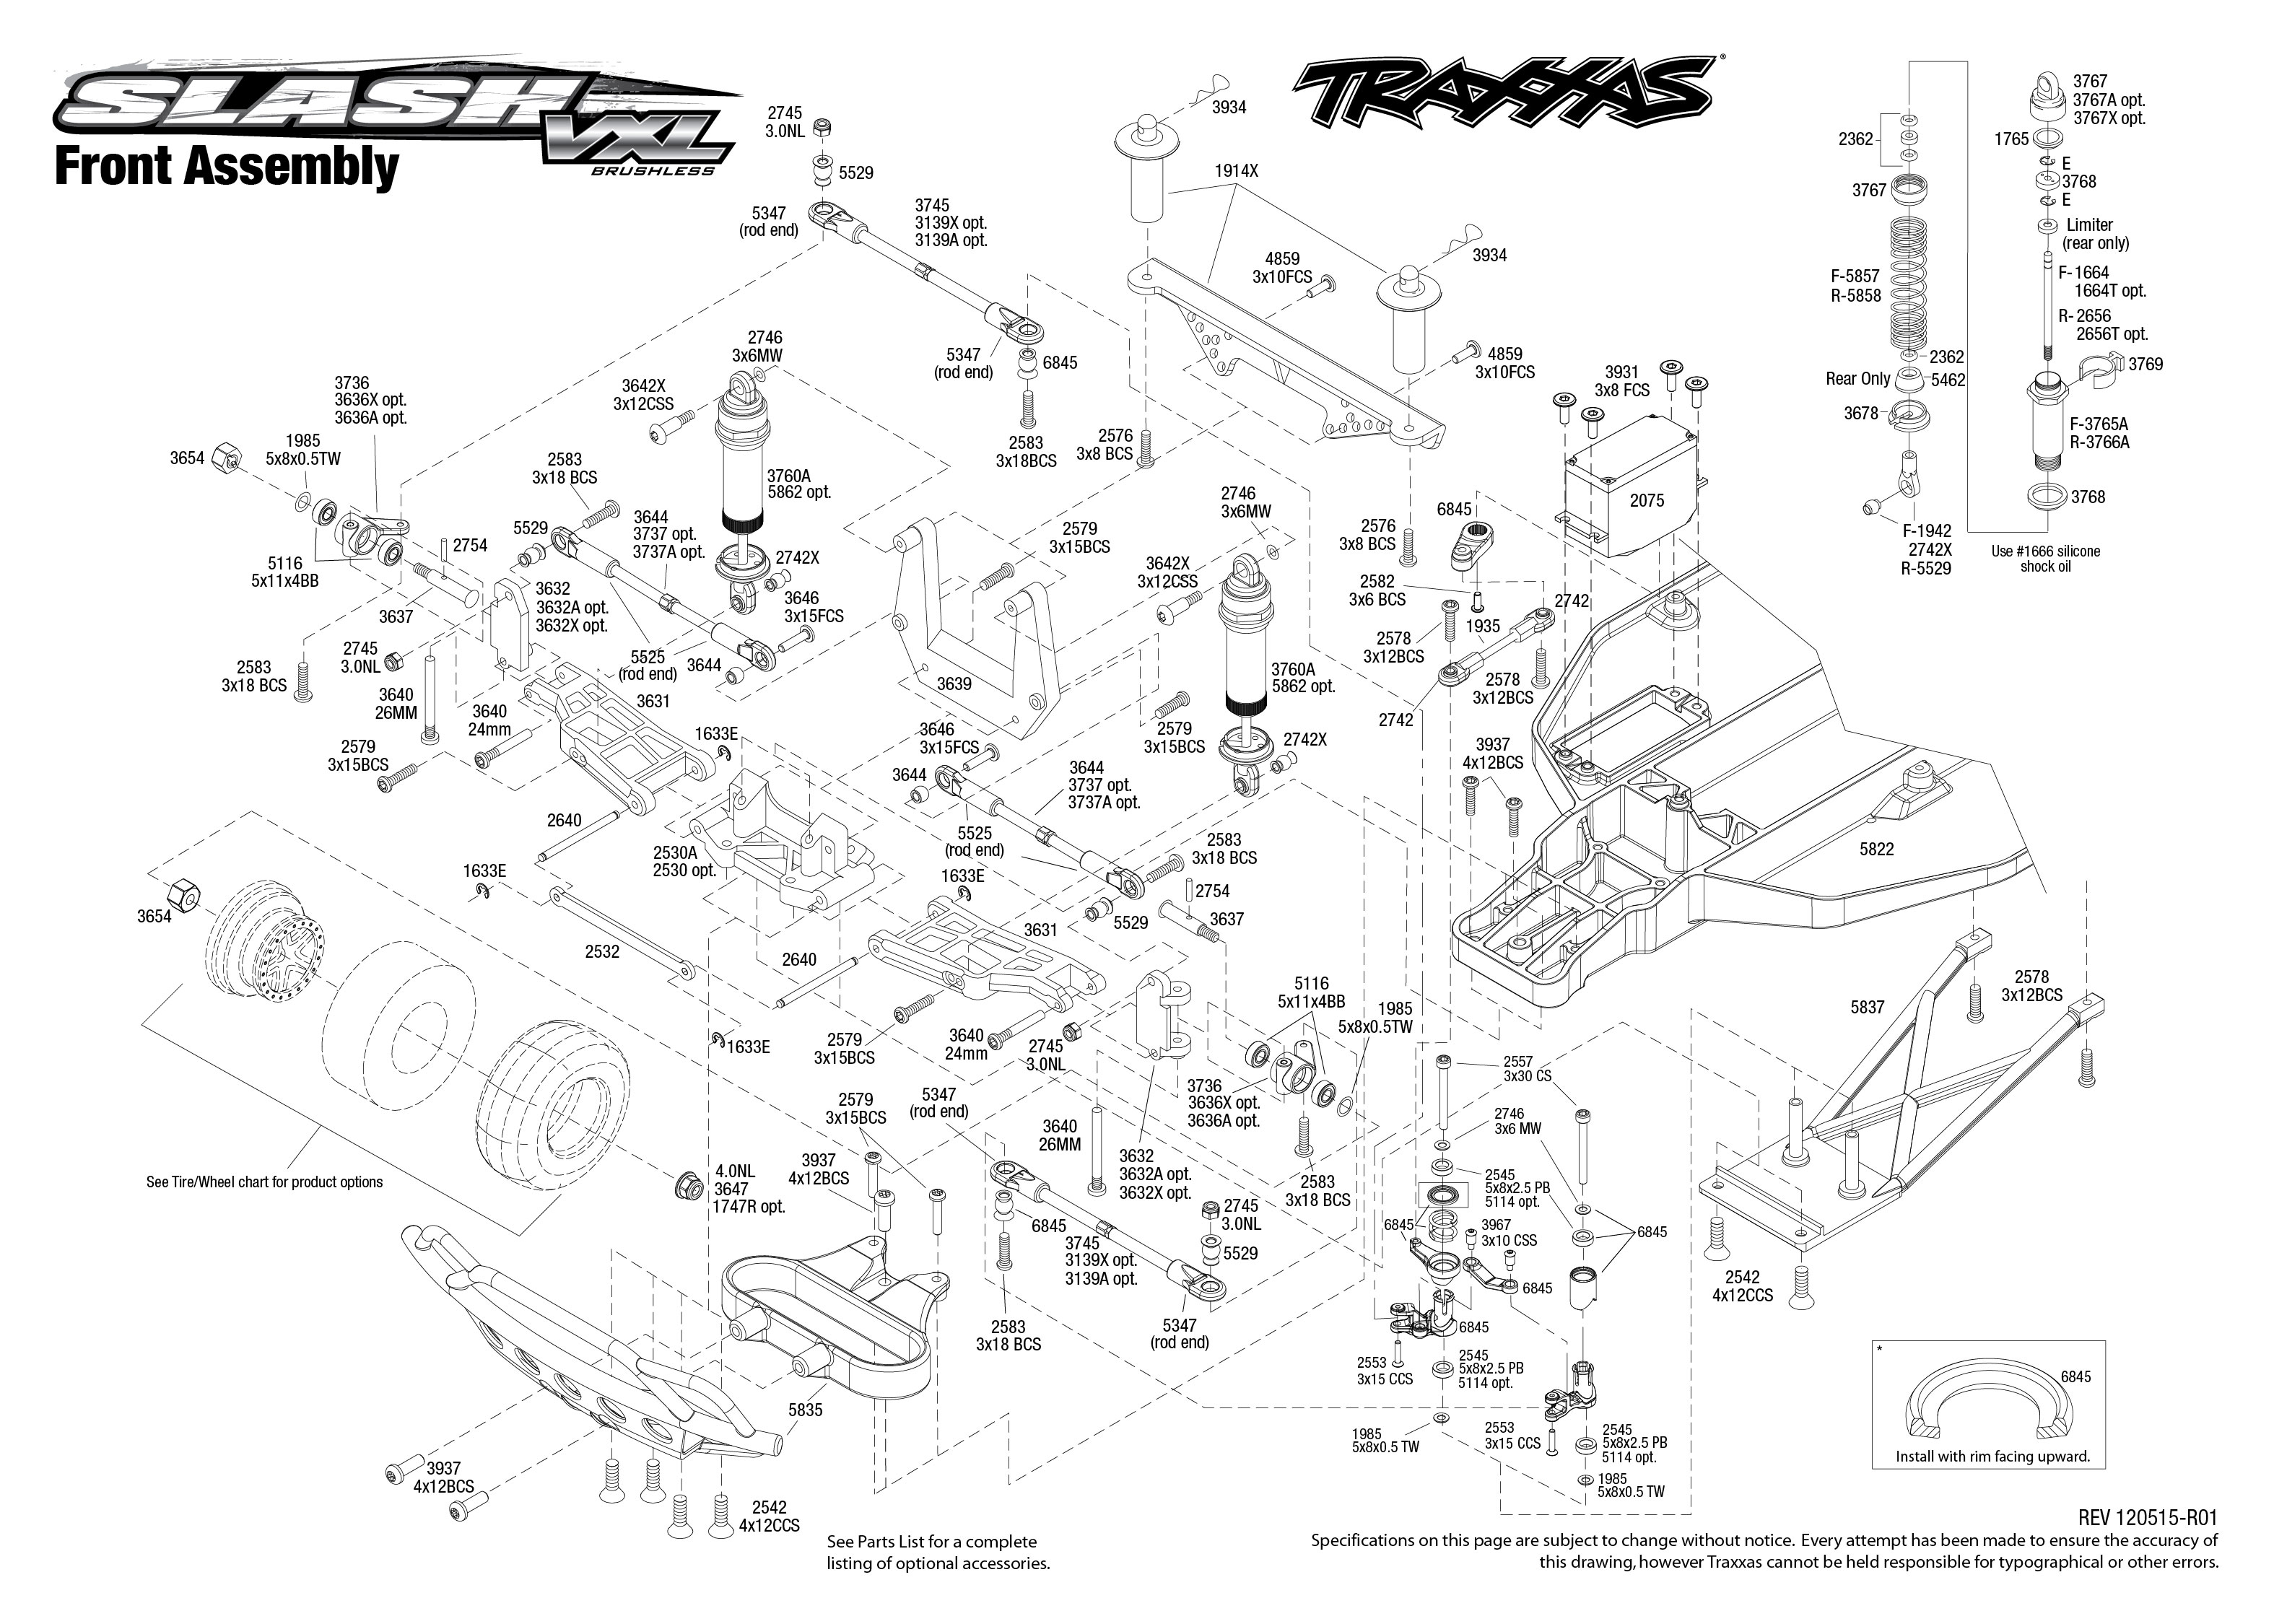 transmission parts diagram on iphone 4 exploded parts diagram